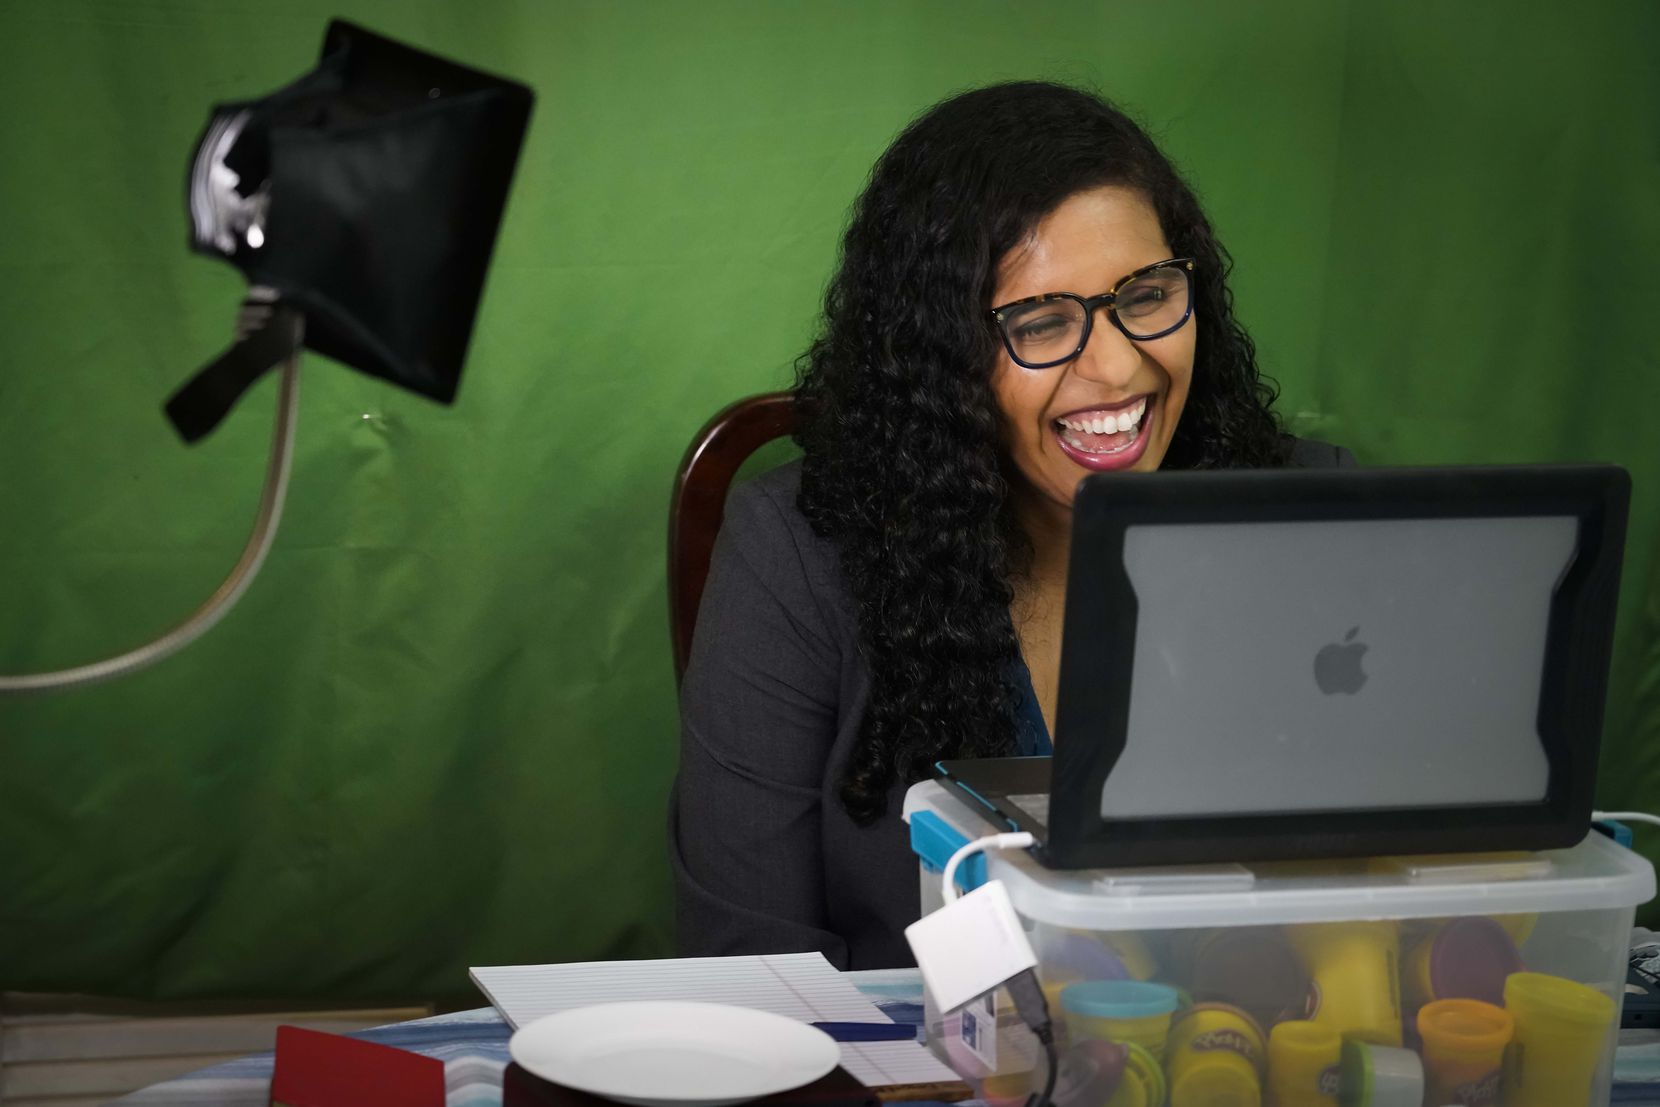 Candace Valenzuela, candidate for TexasÕ 24th Congressional District, holds a virtual fundraiser from her dining room table on Wednesday, June 24, 2020, in Dallas. Valenzuela faces Kim Olson in the Democratic primary runoff on July 14th. (Smiley N. Pool/The Dallas Morning News)